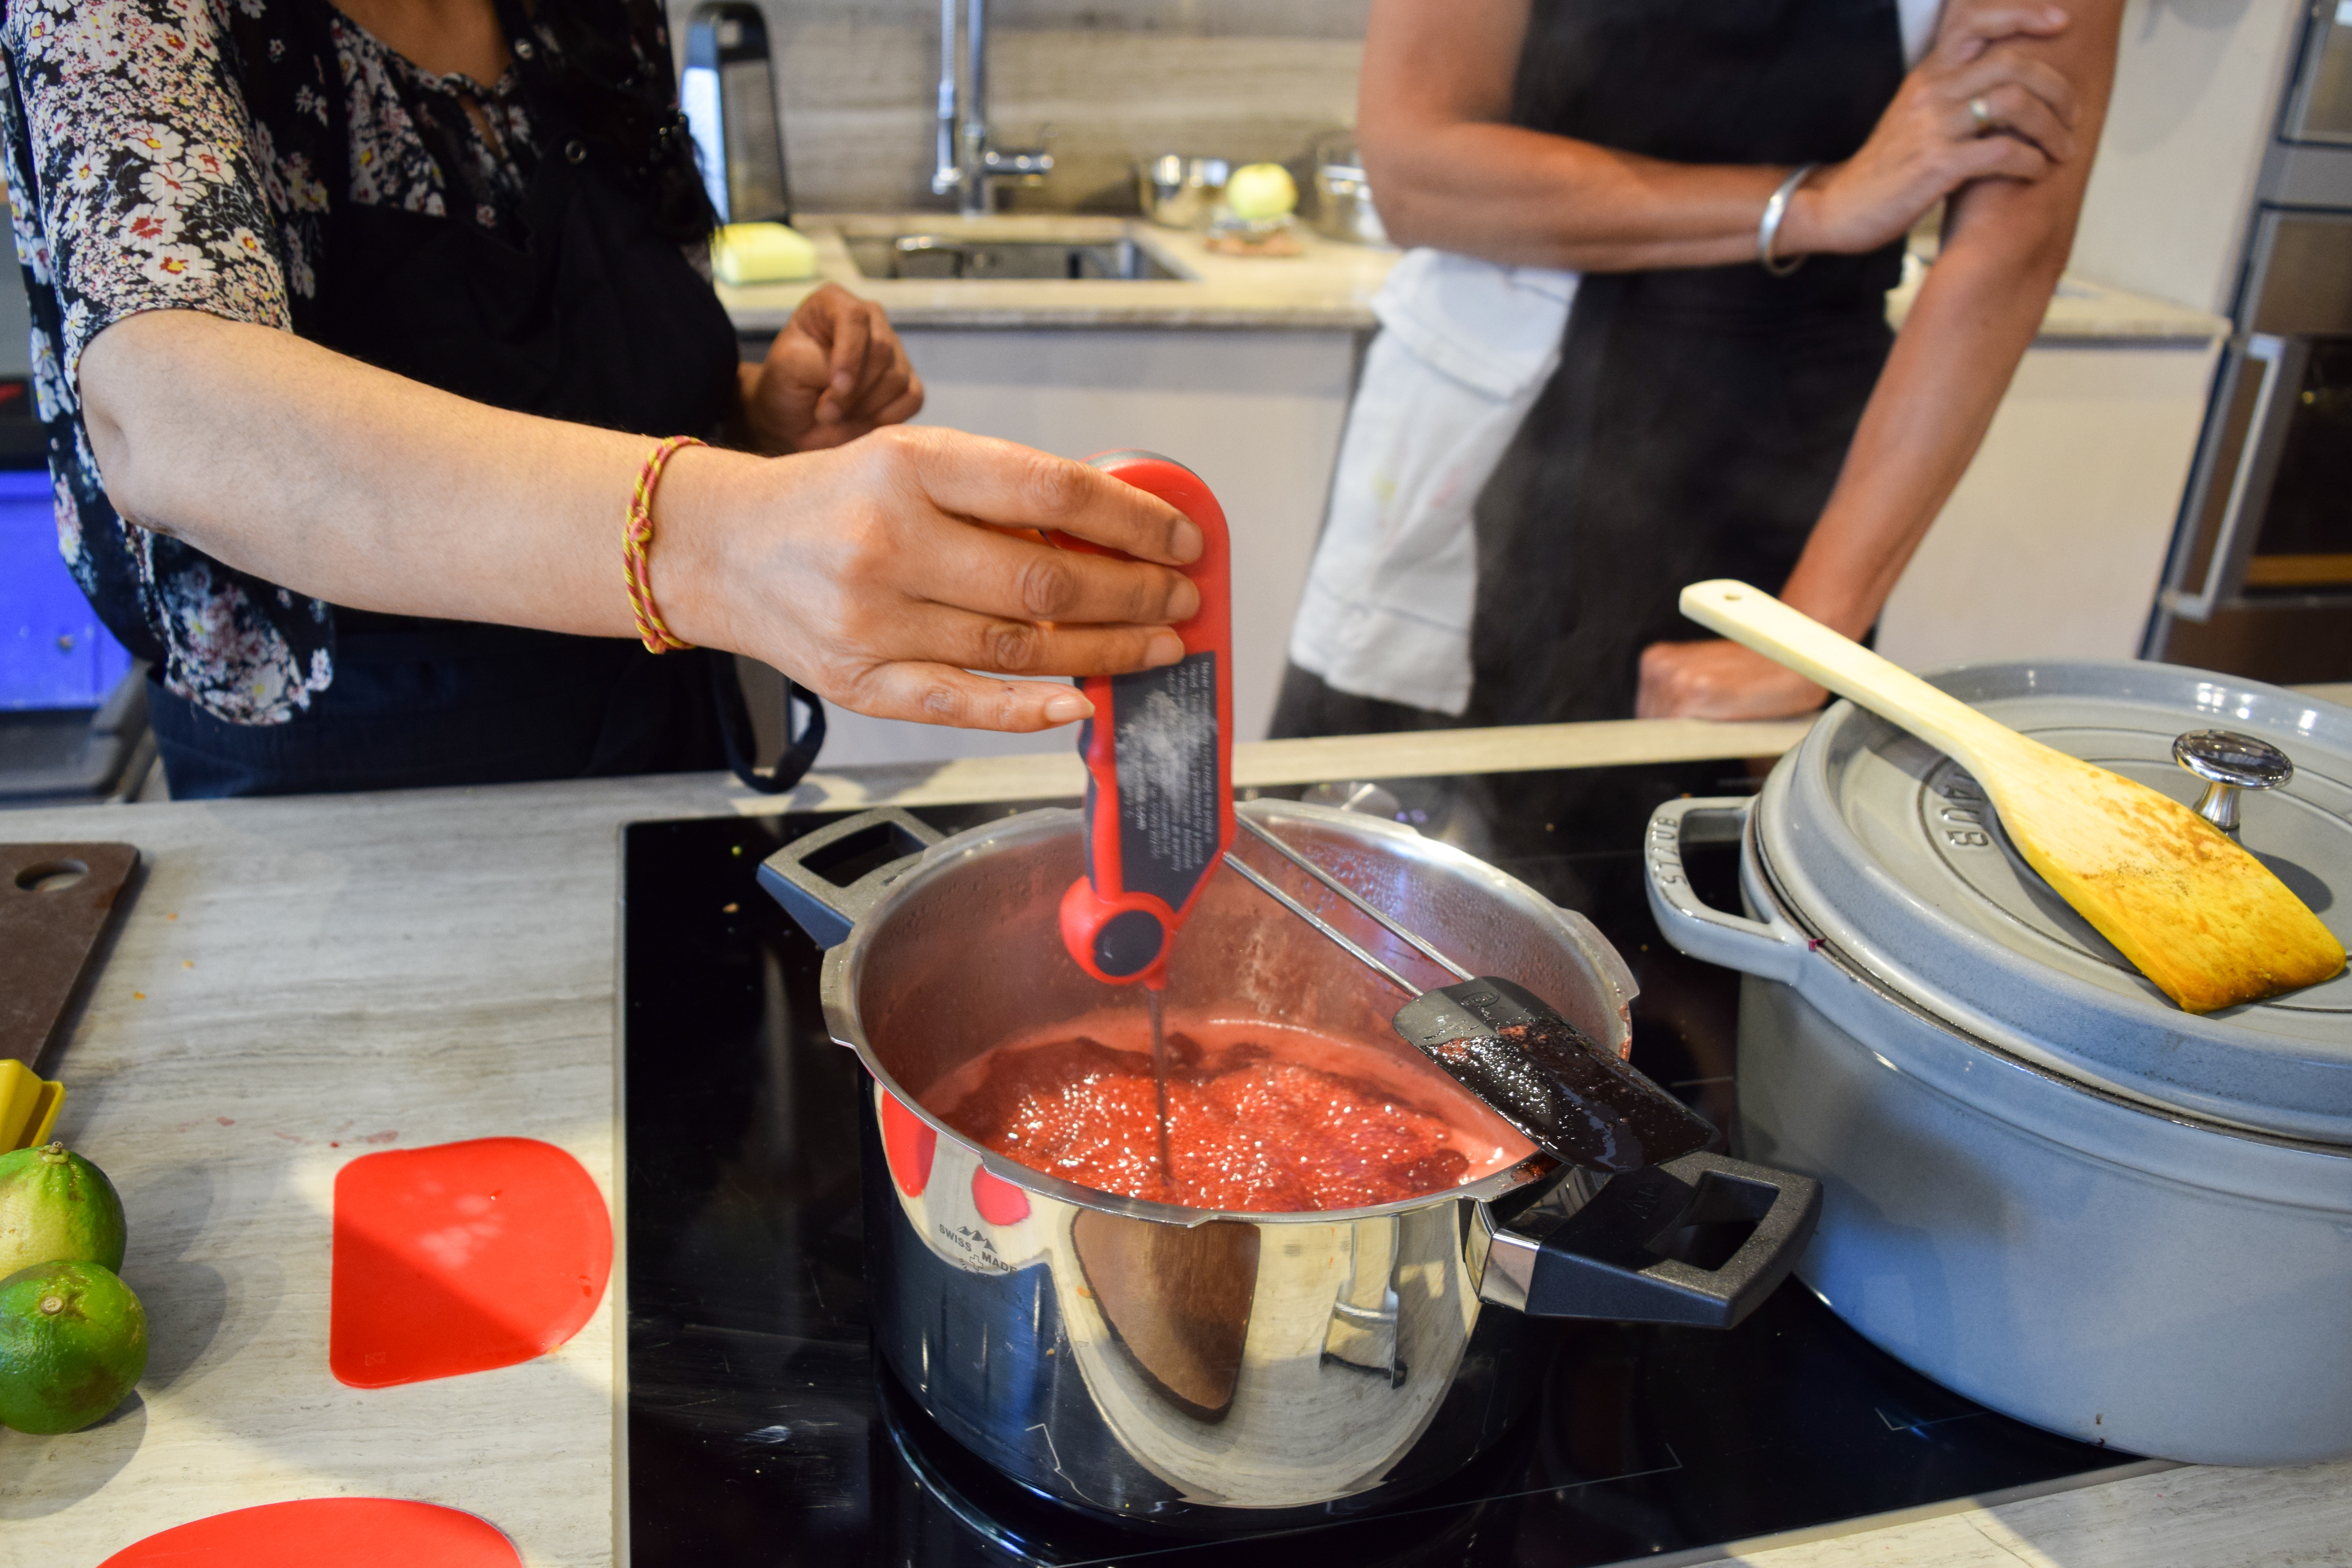 Making Strawberry Jam at the Jam and Preserves Masterclass at Borough Kitchen